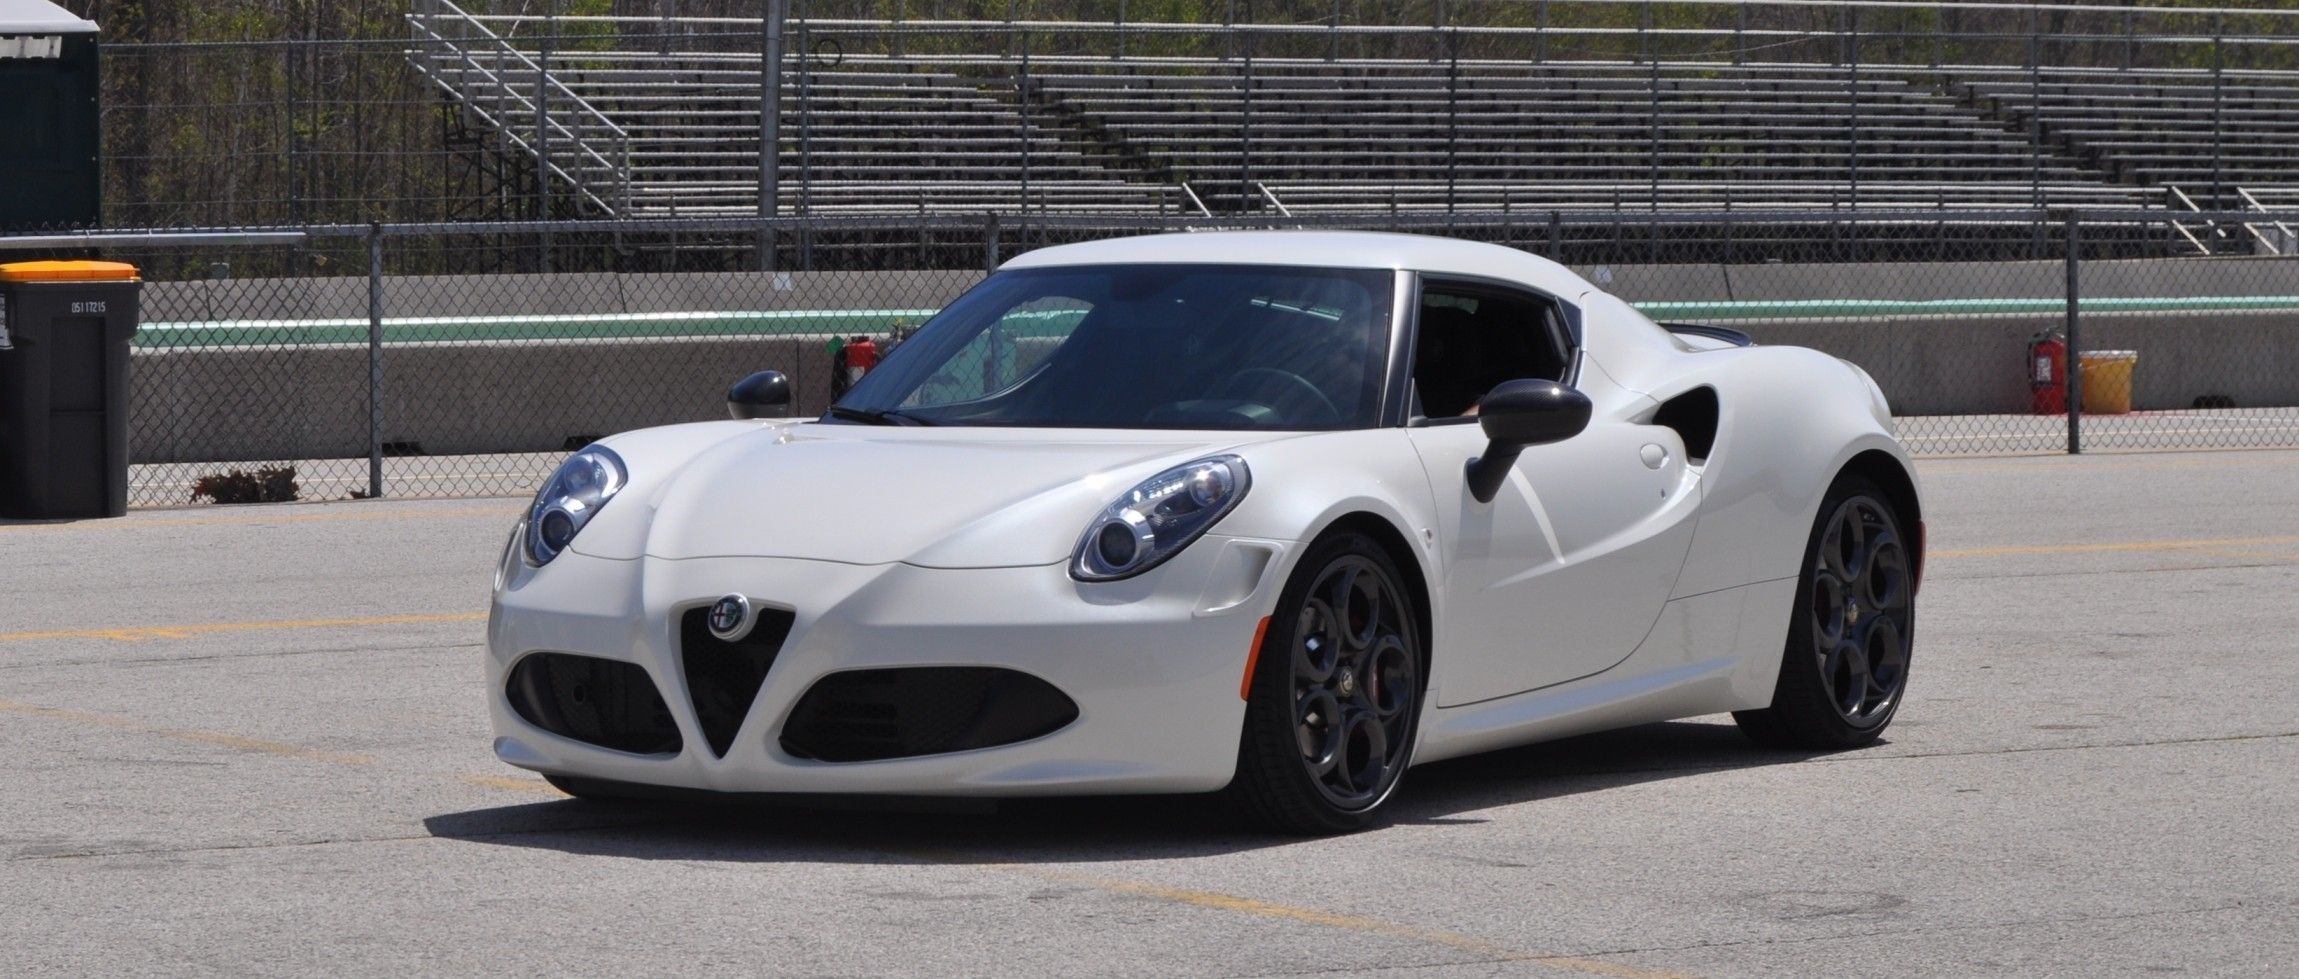 gorgeous 2015 alfa romeo 4c revealed in full usa trim new headlights 3. Black Bedroom Furniture Sets. Home Design Ideas